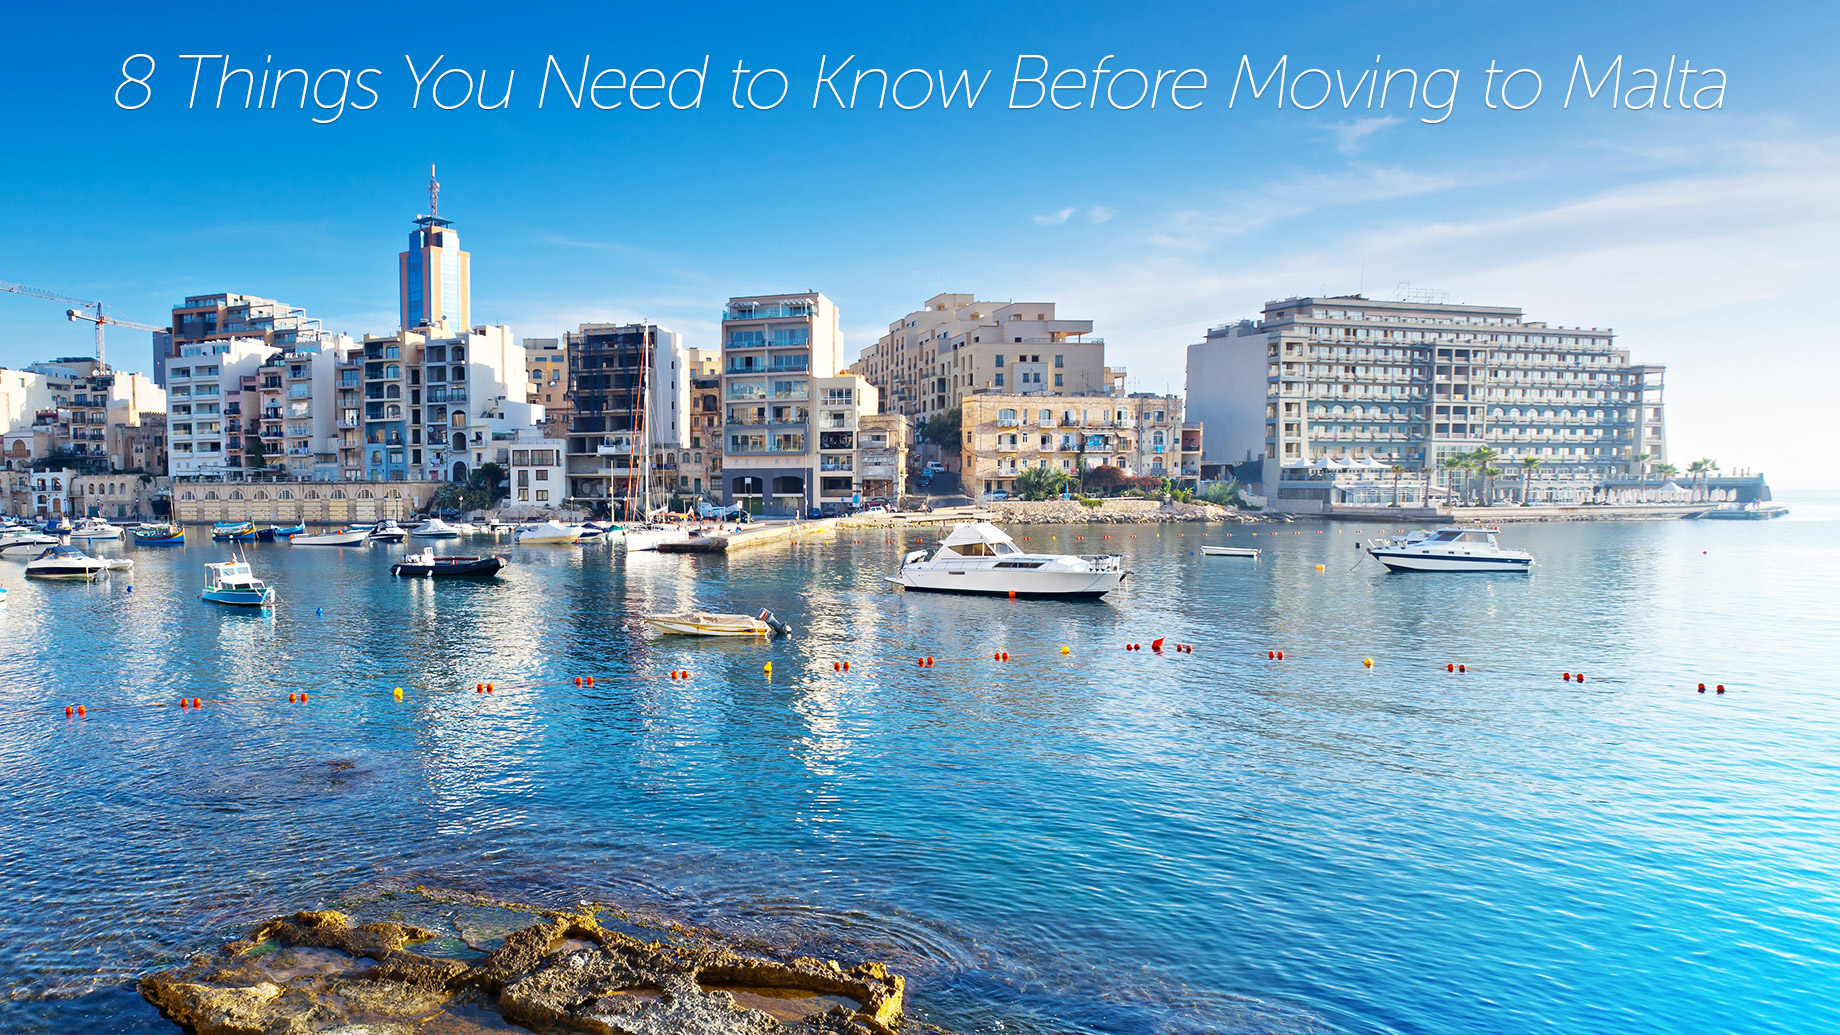 8 Things You Need to Know Before Moving to Malta